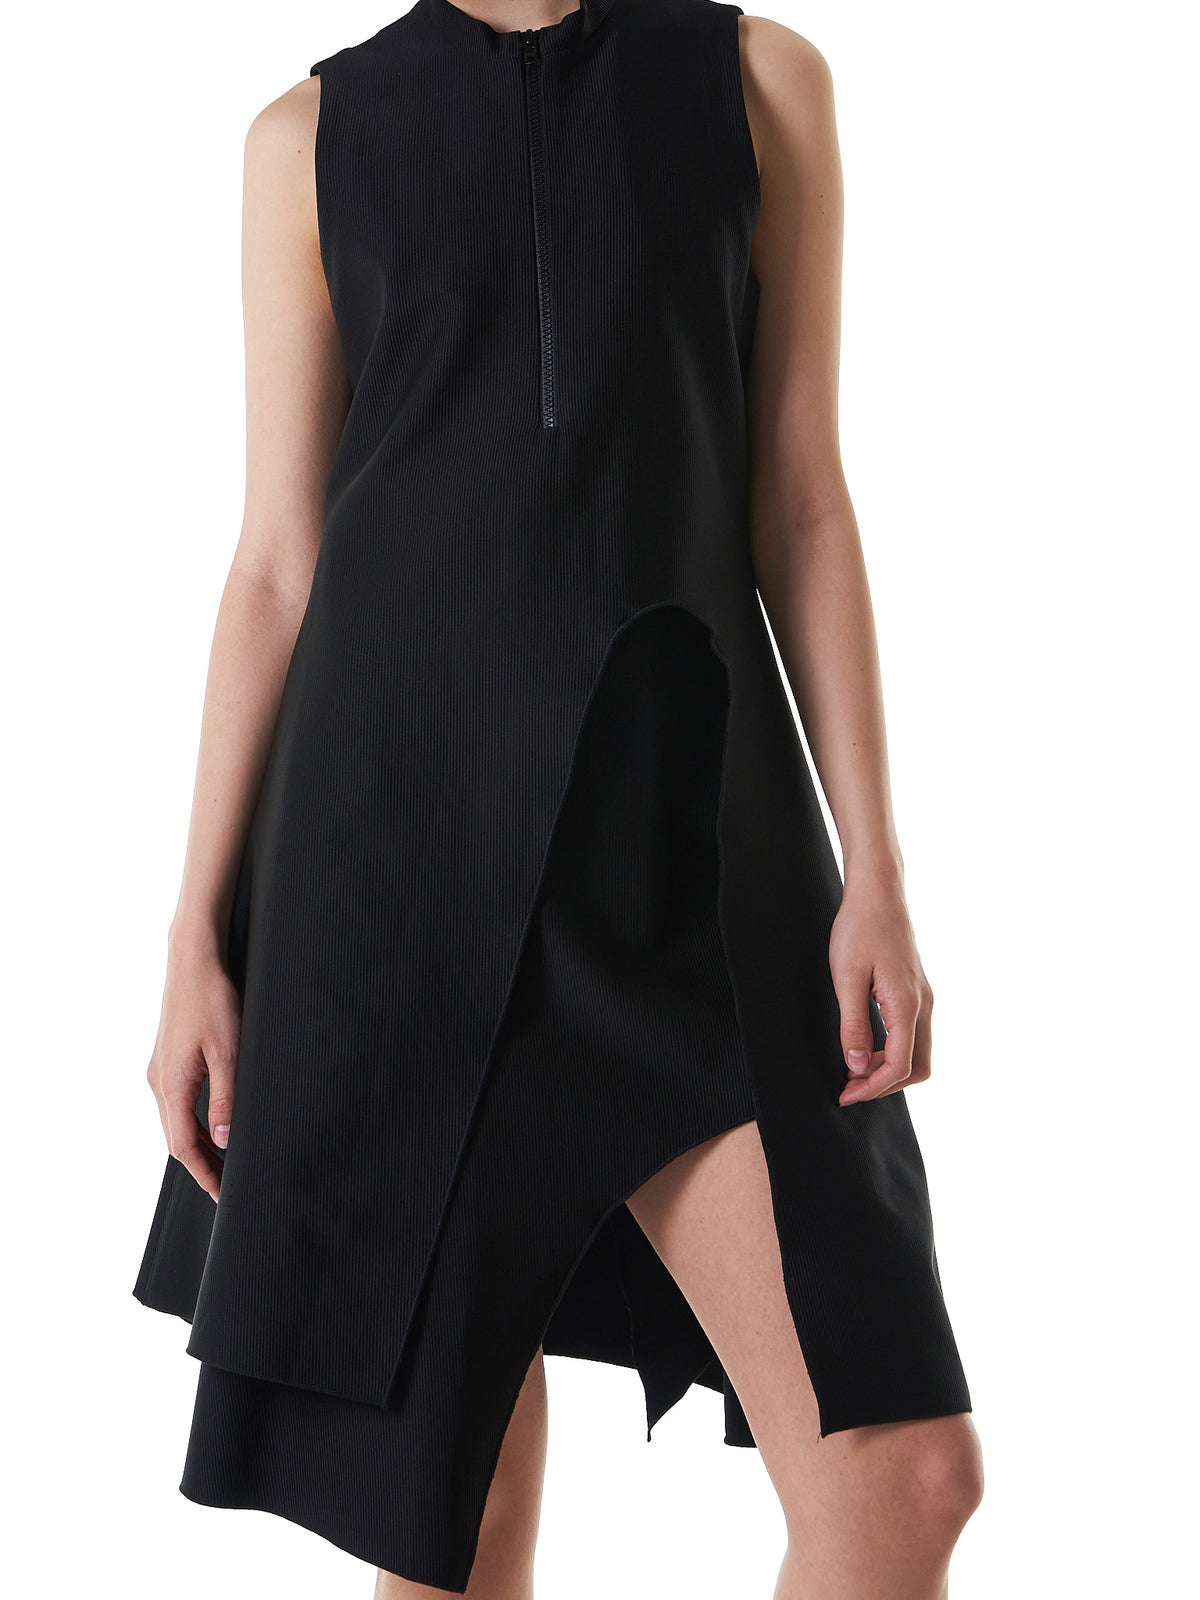 Structured Sleeveless Dress (11-1-B-BLACK) - H. Lorenzo